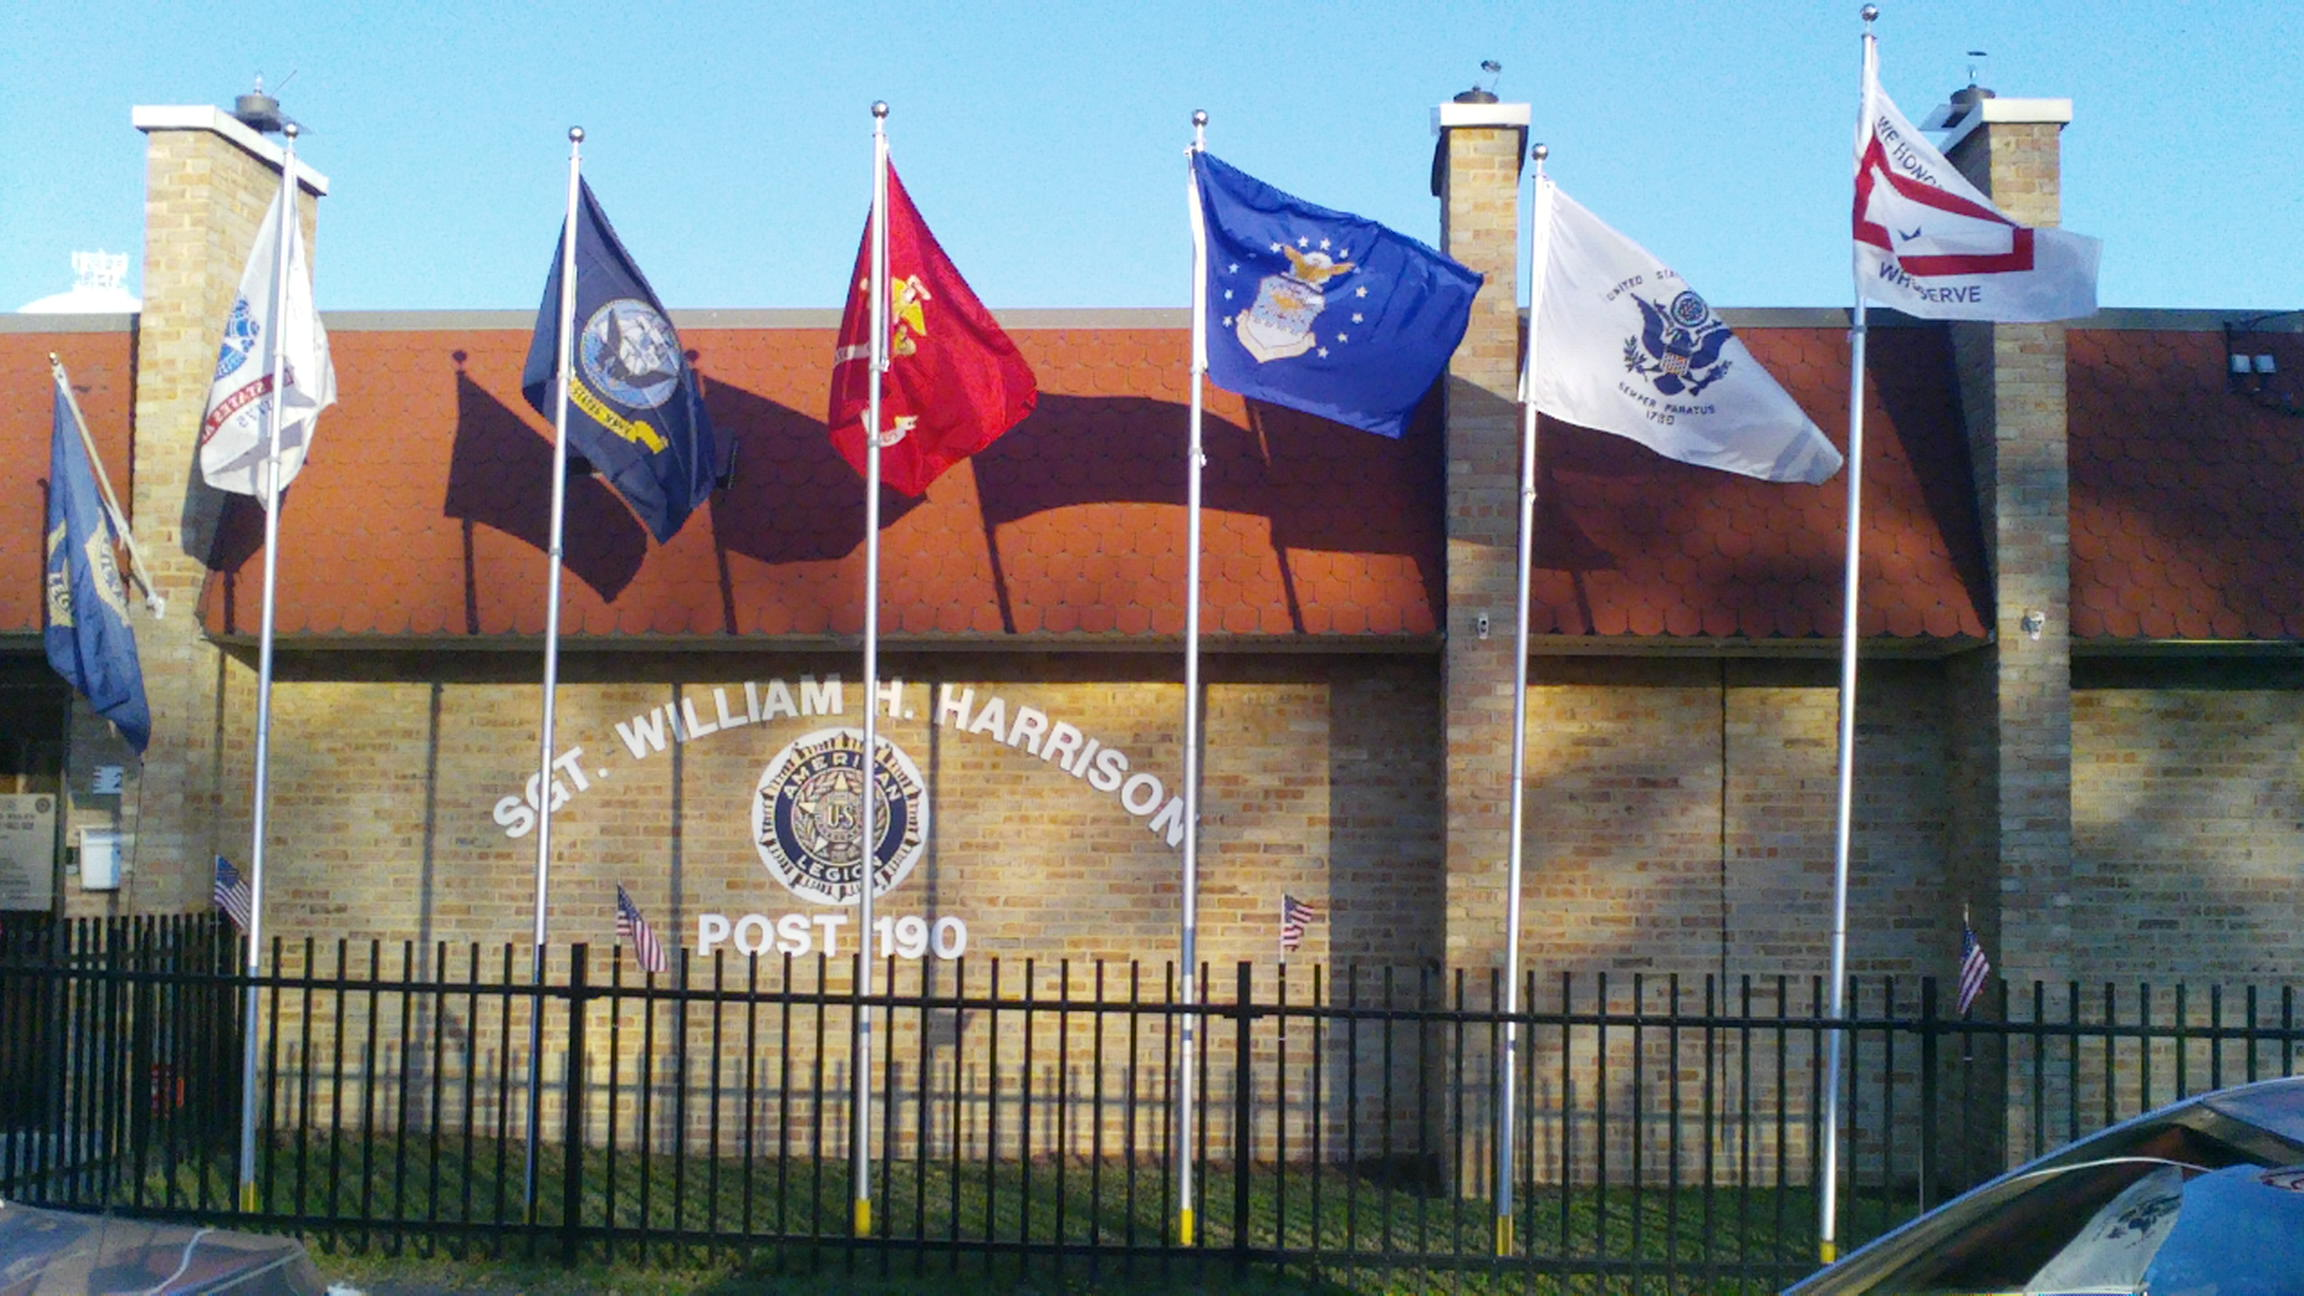 AMERICAN  LEGION  POST 190, 2711  PEACH  STREET, PORTSMOUTH, VIRGINIA, 23704, USA